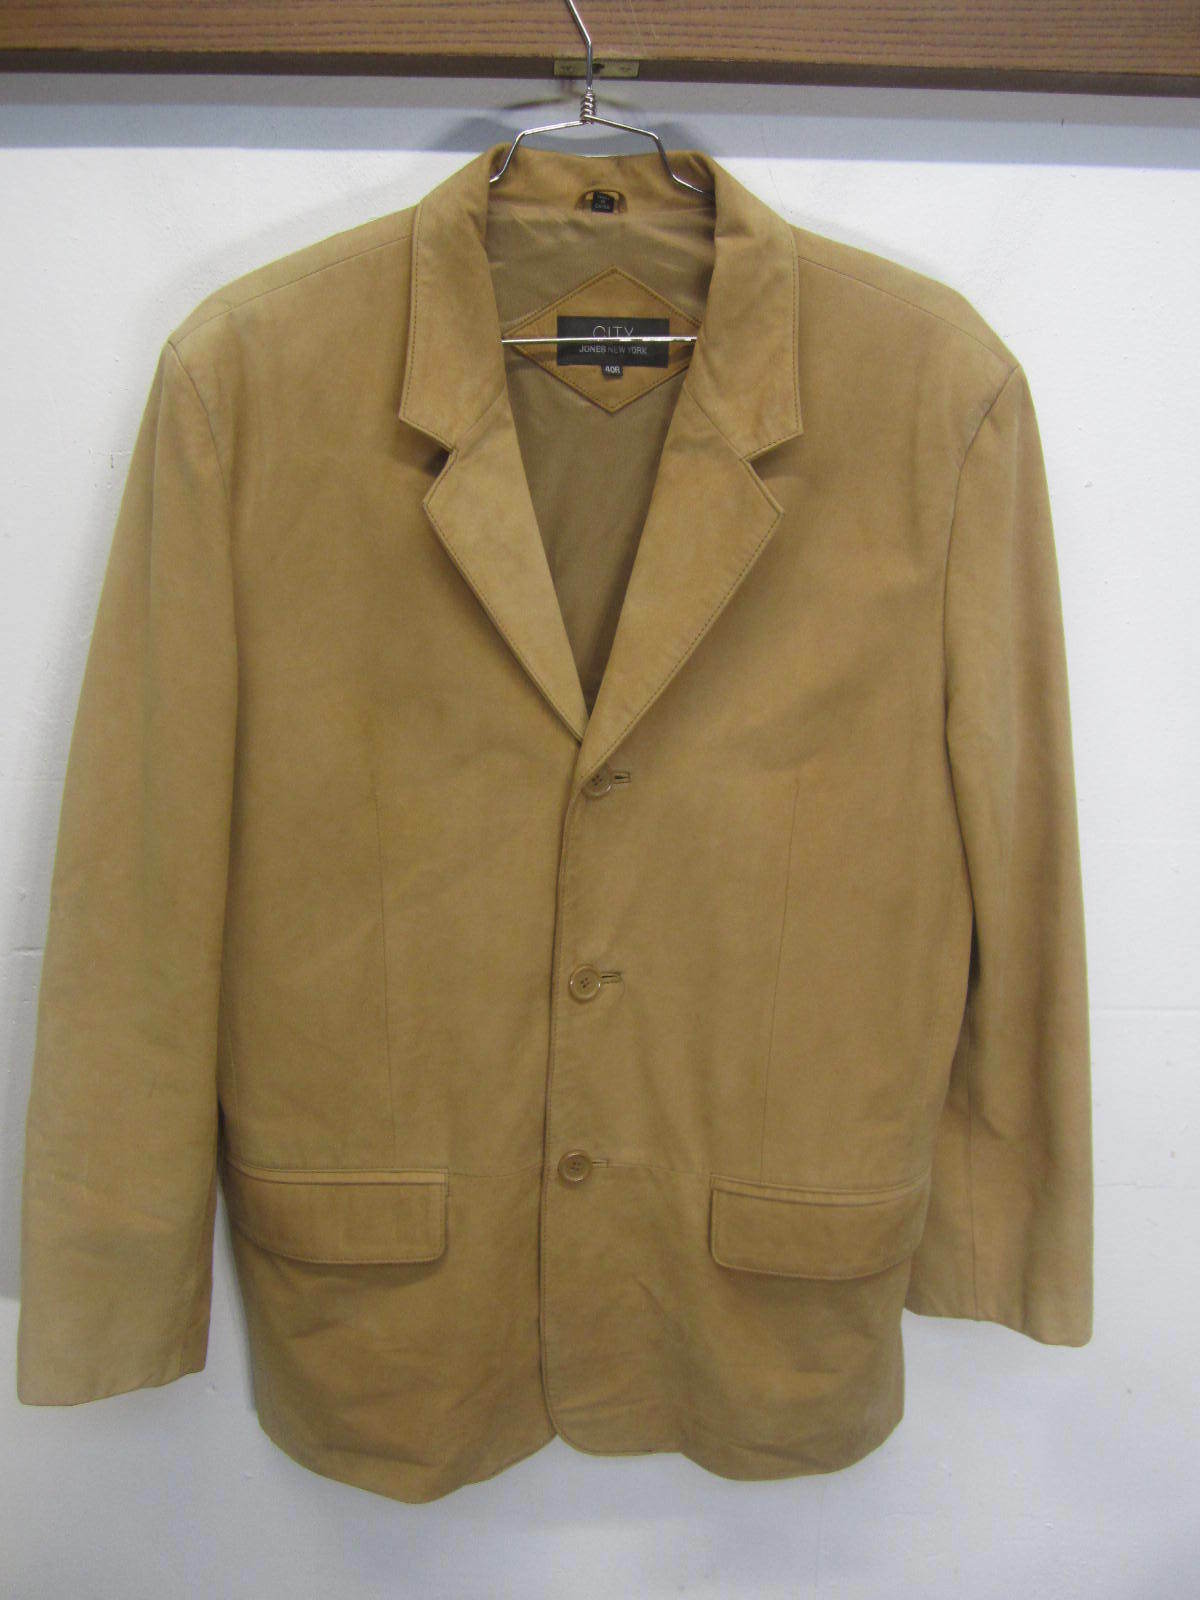 Vtg City Jones New York Blazer Sport Coat tan suede leather 3 button sz 40R